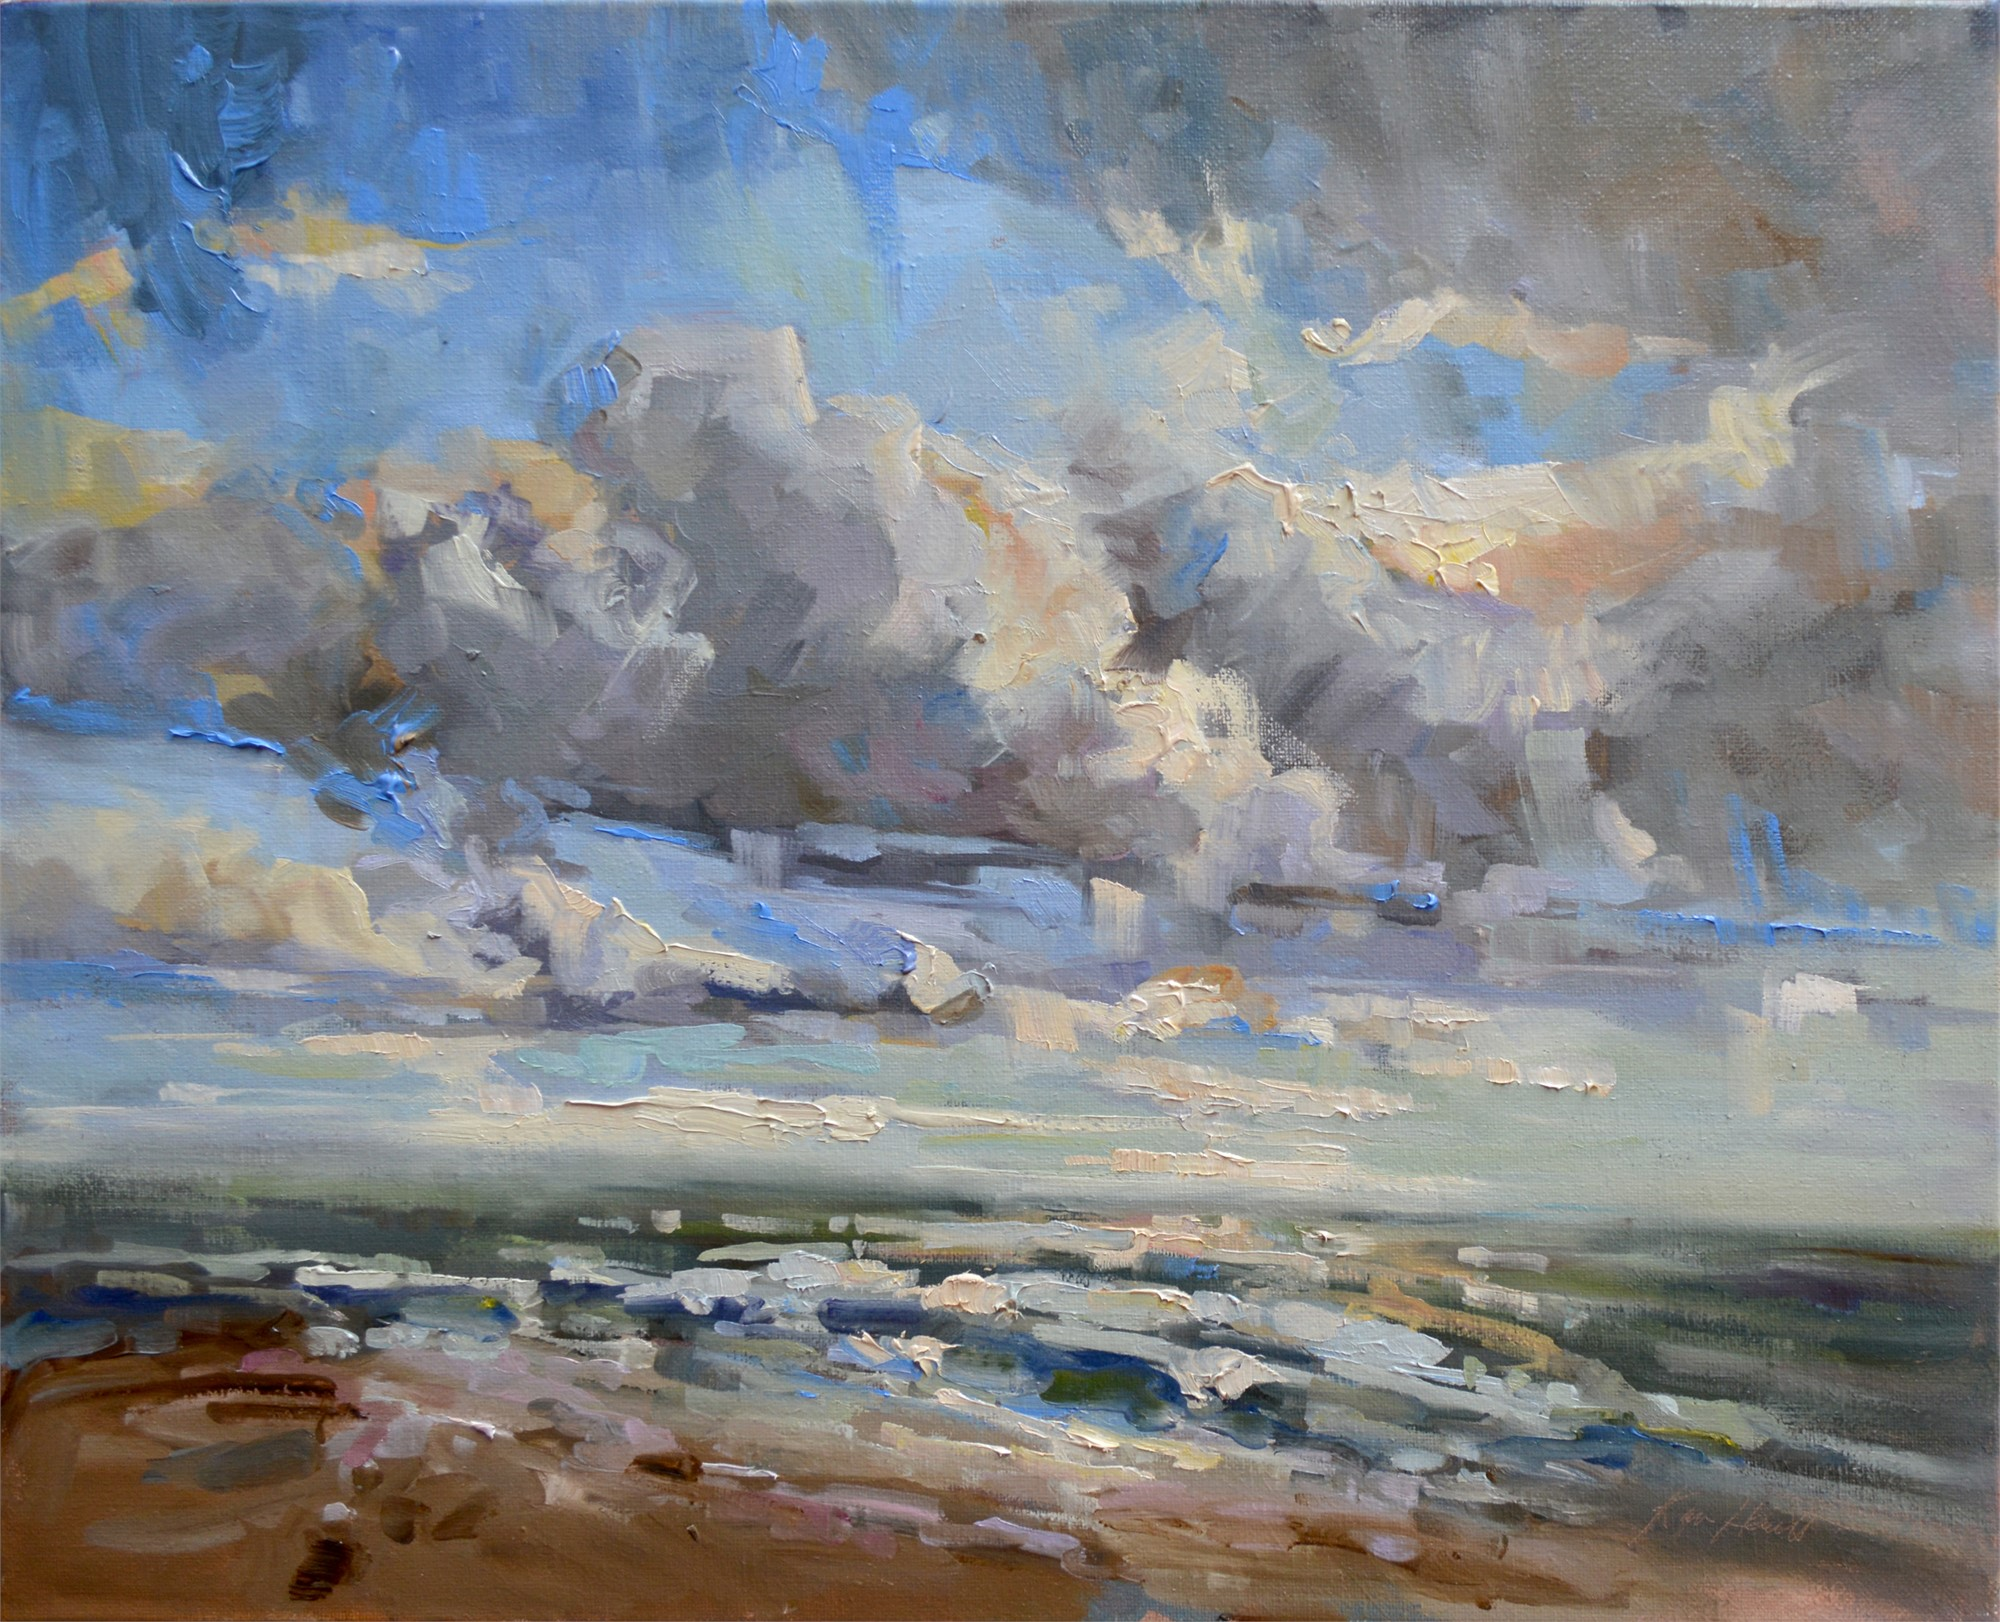 Big Sky at the Beach by Karen Hewitt Hagan